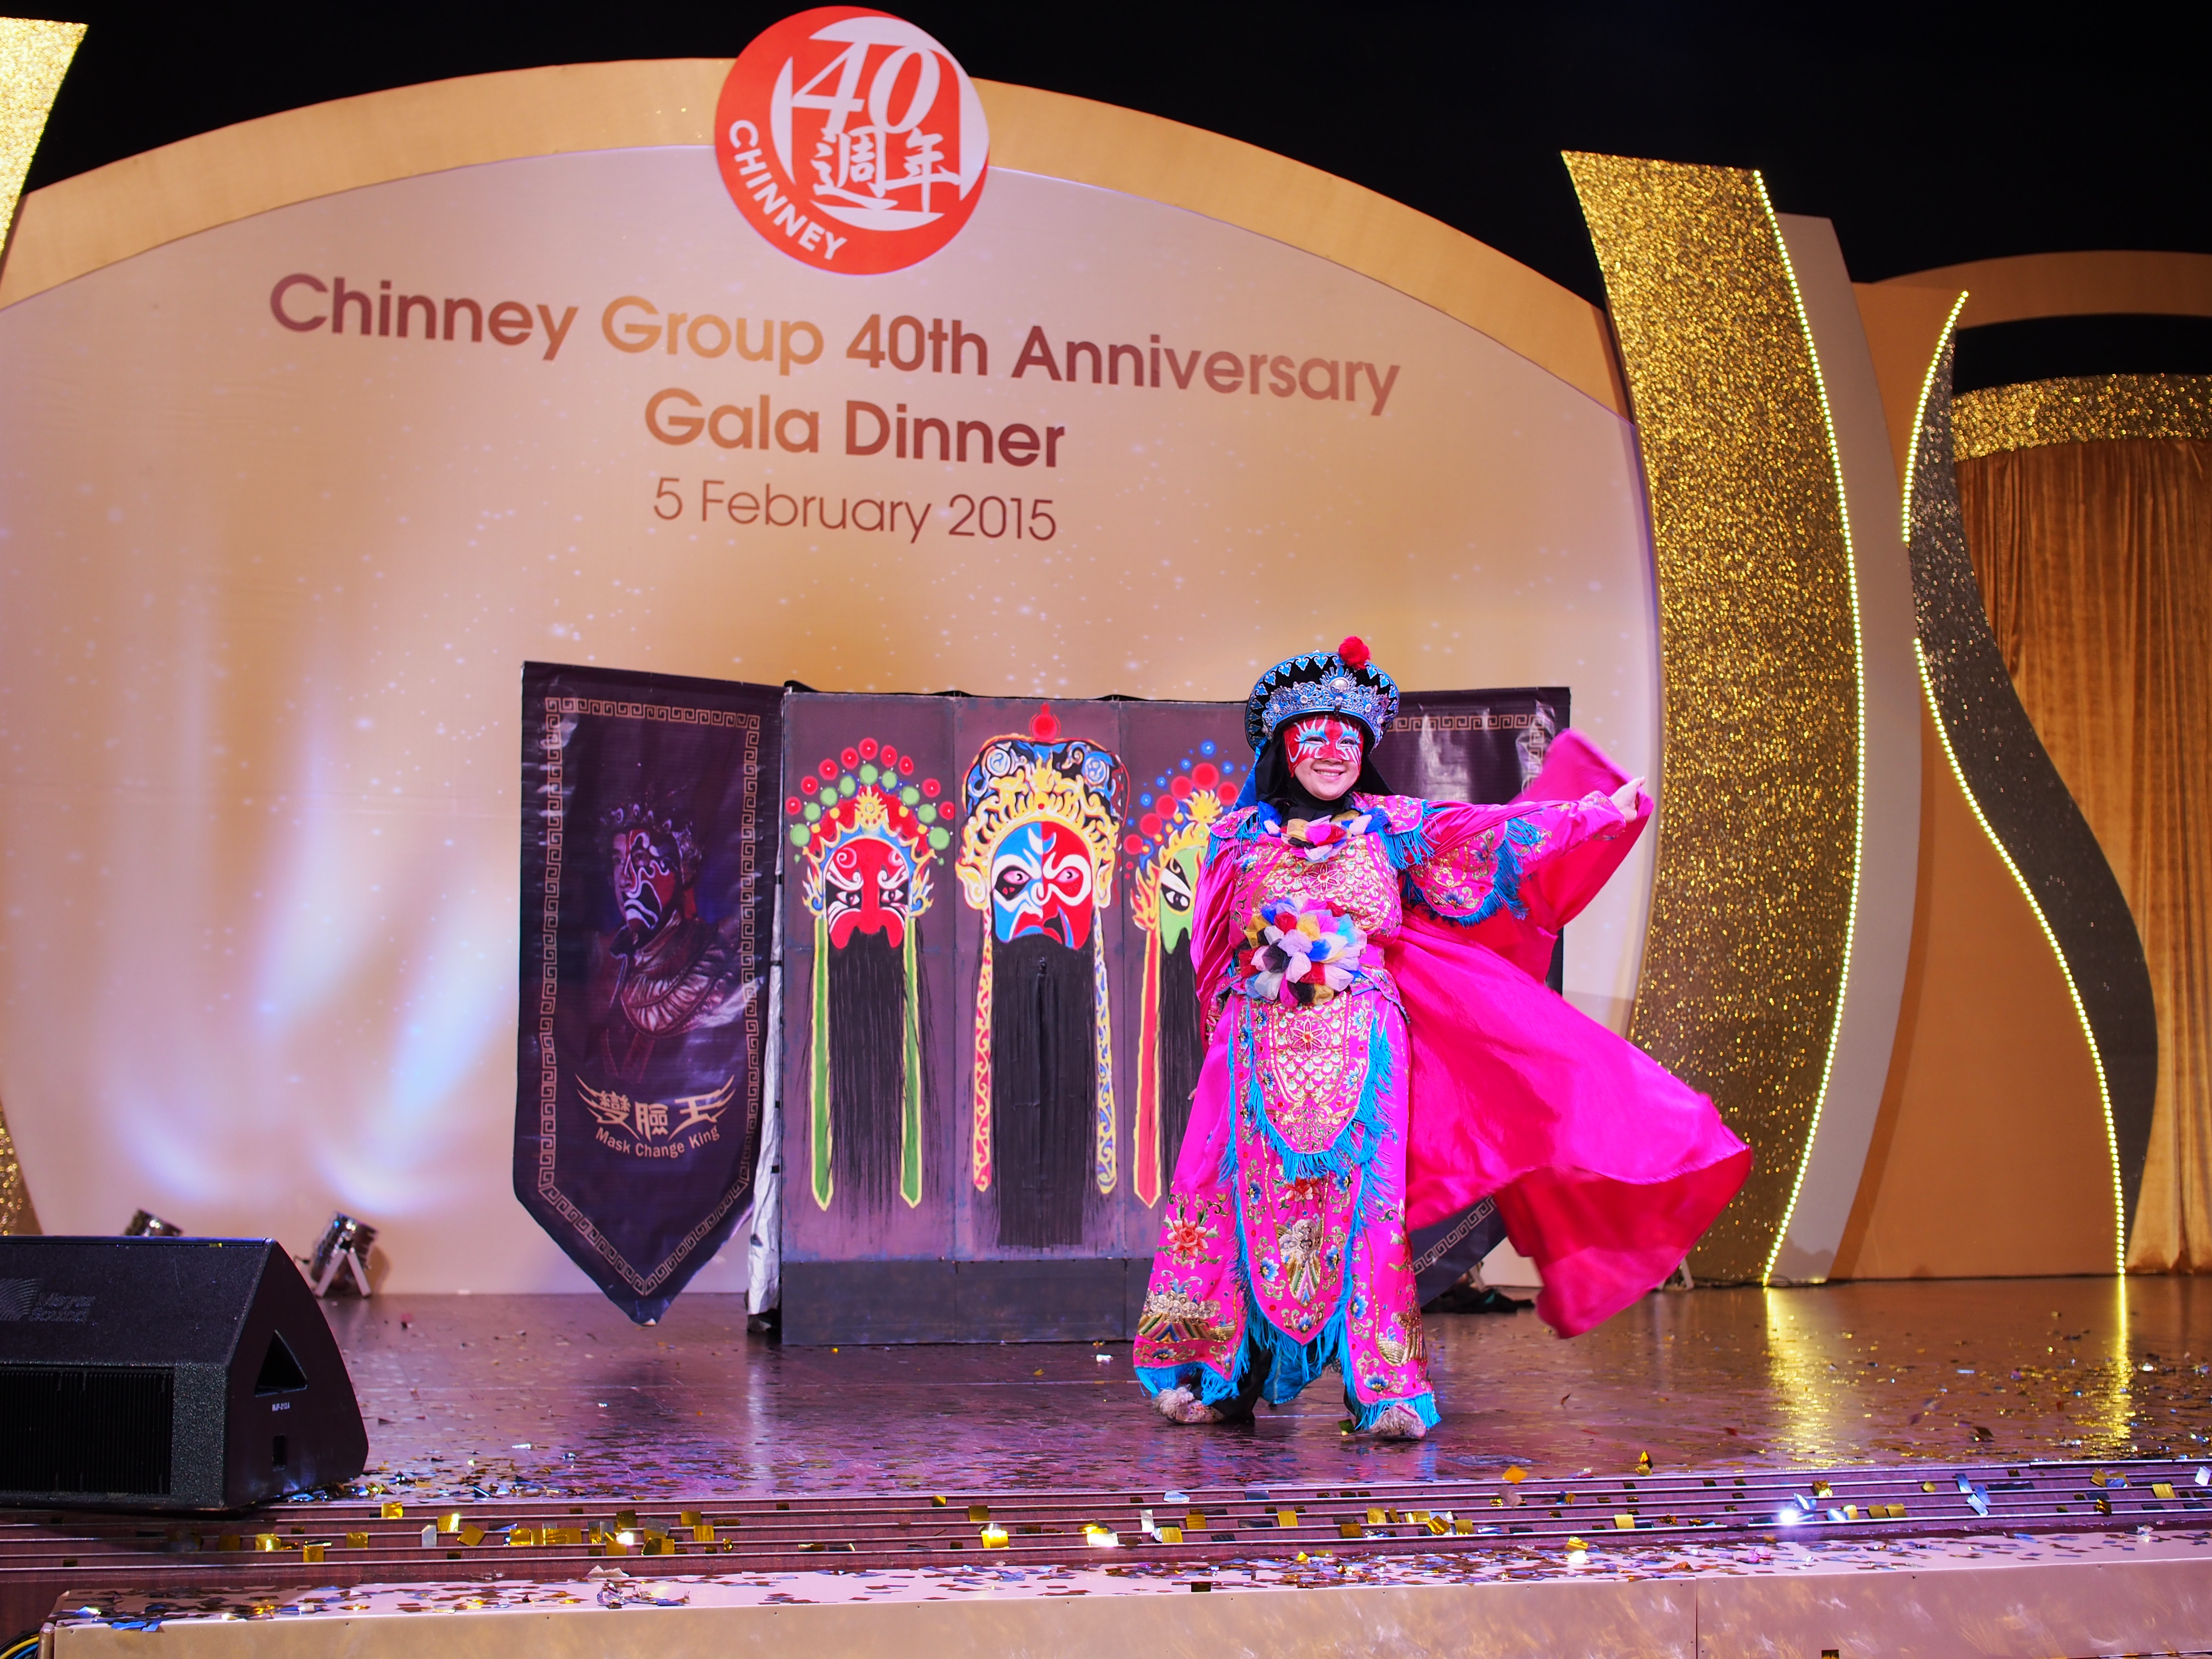 Chinney Group 40th Anniversary Gala